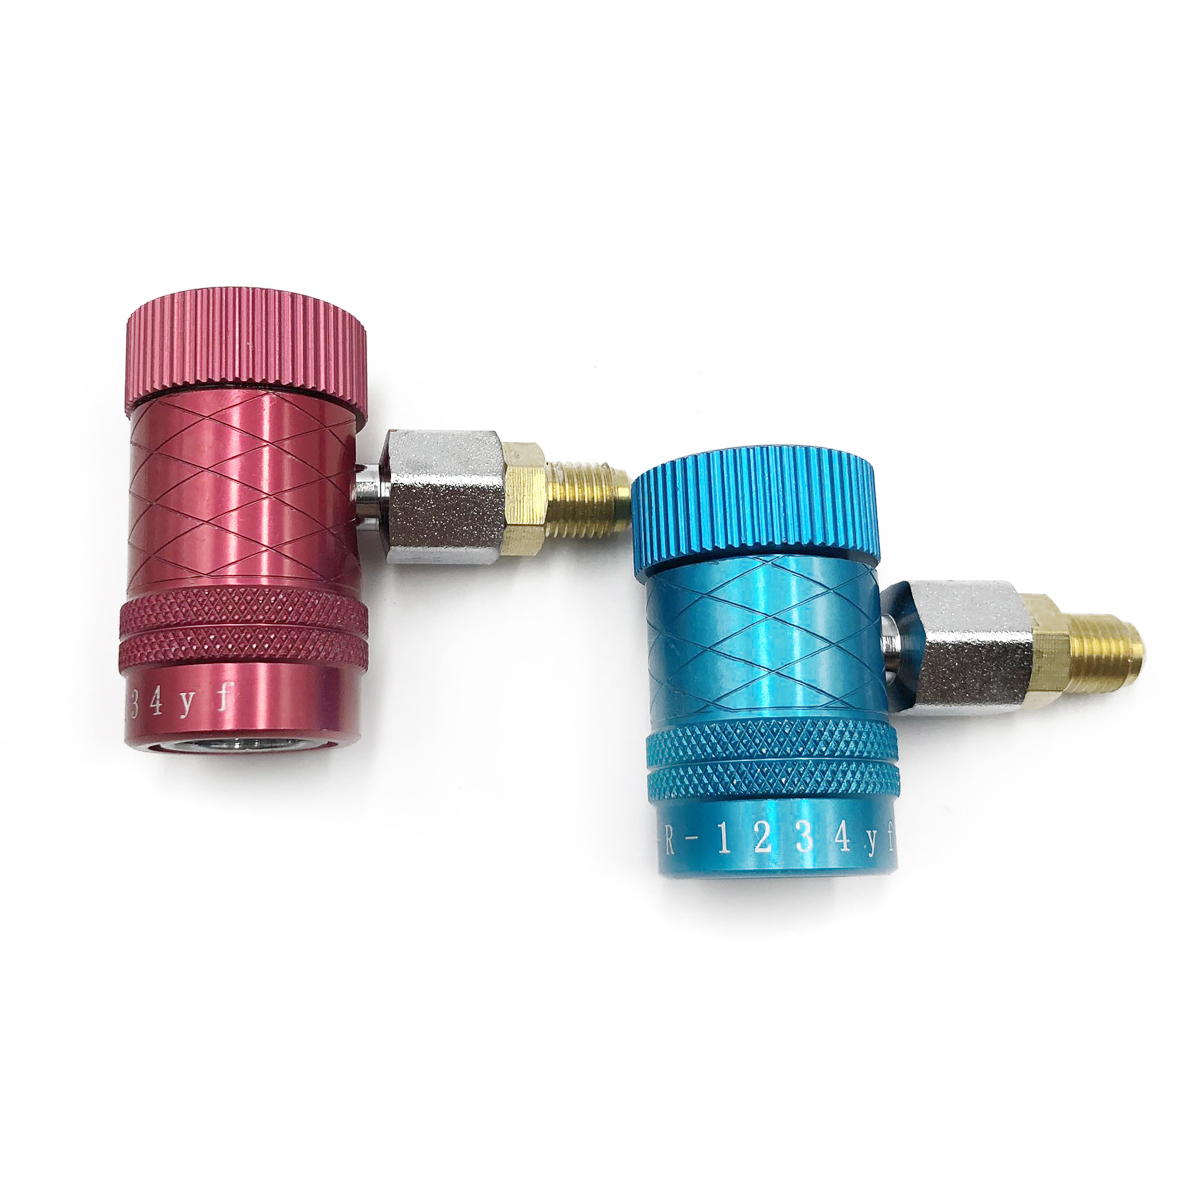 1 Pair R1234yf A/C Adjustable Quick Coupler Connector Adapter For Automobile Air Conditioning Refrigerant Tool Mayitr1 Pair R1234yf A/C Adjustable Quick Coupler Connector Adapter For Automobile Air Conditioning Refrigerant Tool Mayitr